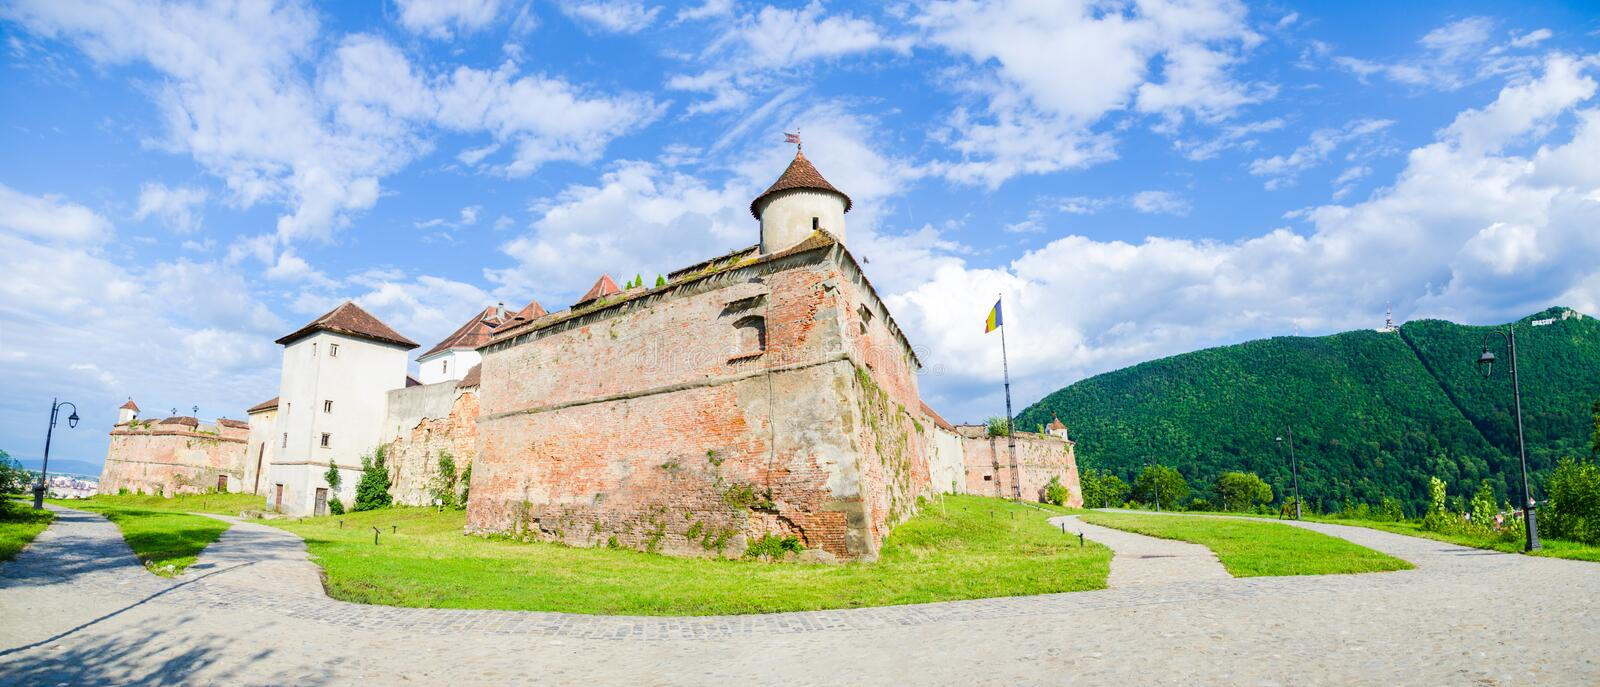 Brasov medieval fortress in Transylvania region of Romania. Brasov Guard Fortress on the hill above wich is a medieval fortification now a tourist attraction in royalty free stock photo